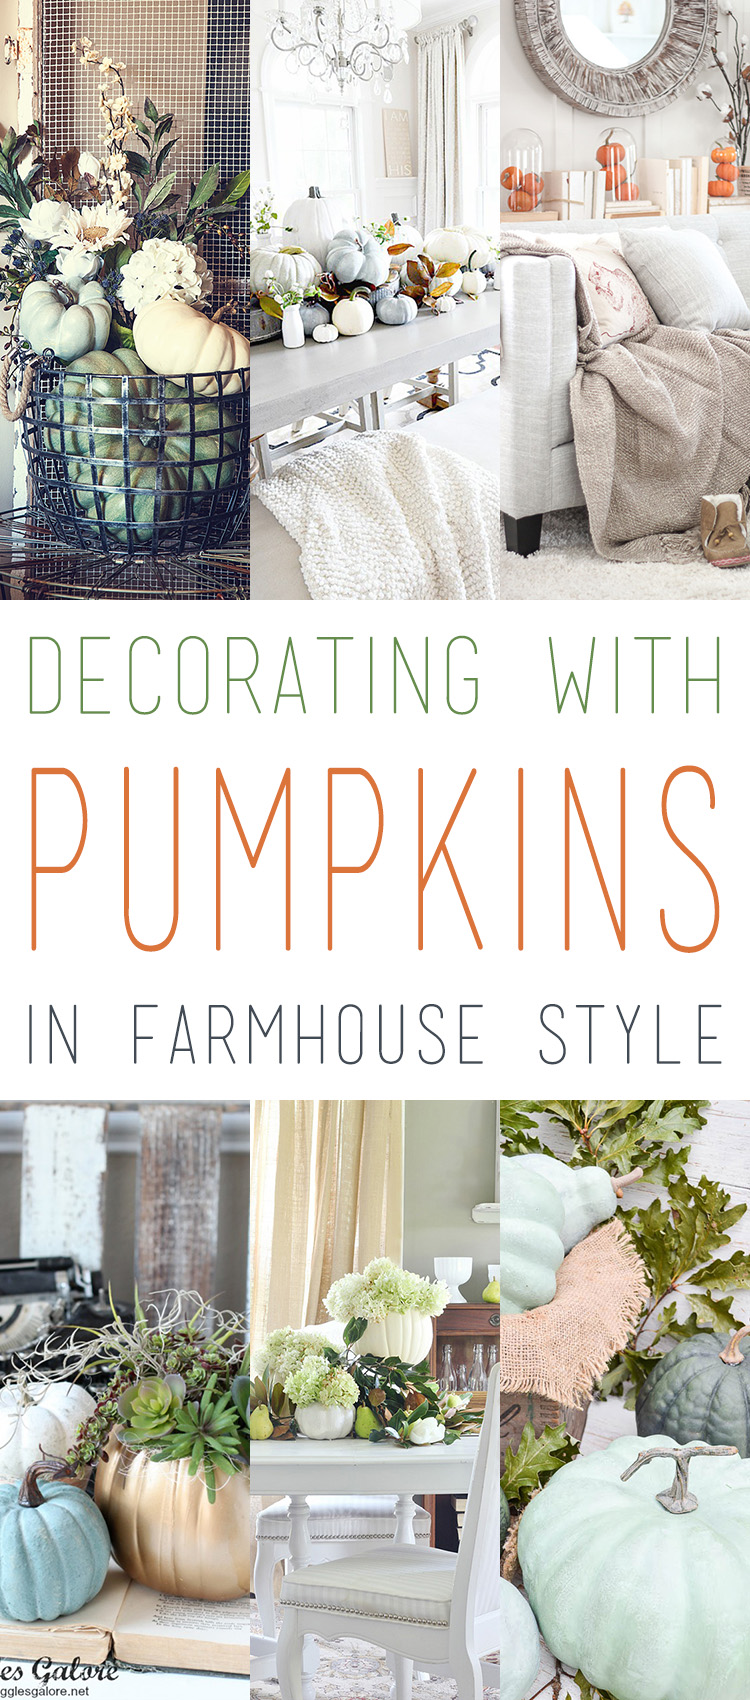 http://thecottagemarket.com/wp-content/uploads/2016/09/PumpkinDecorating-TOWER-0001.jpg